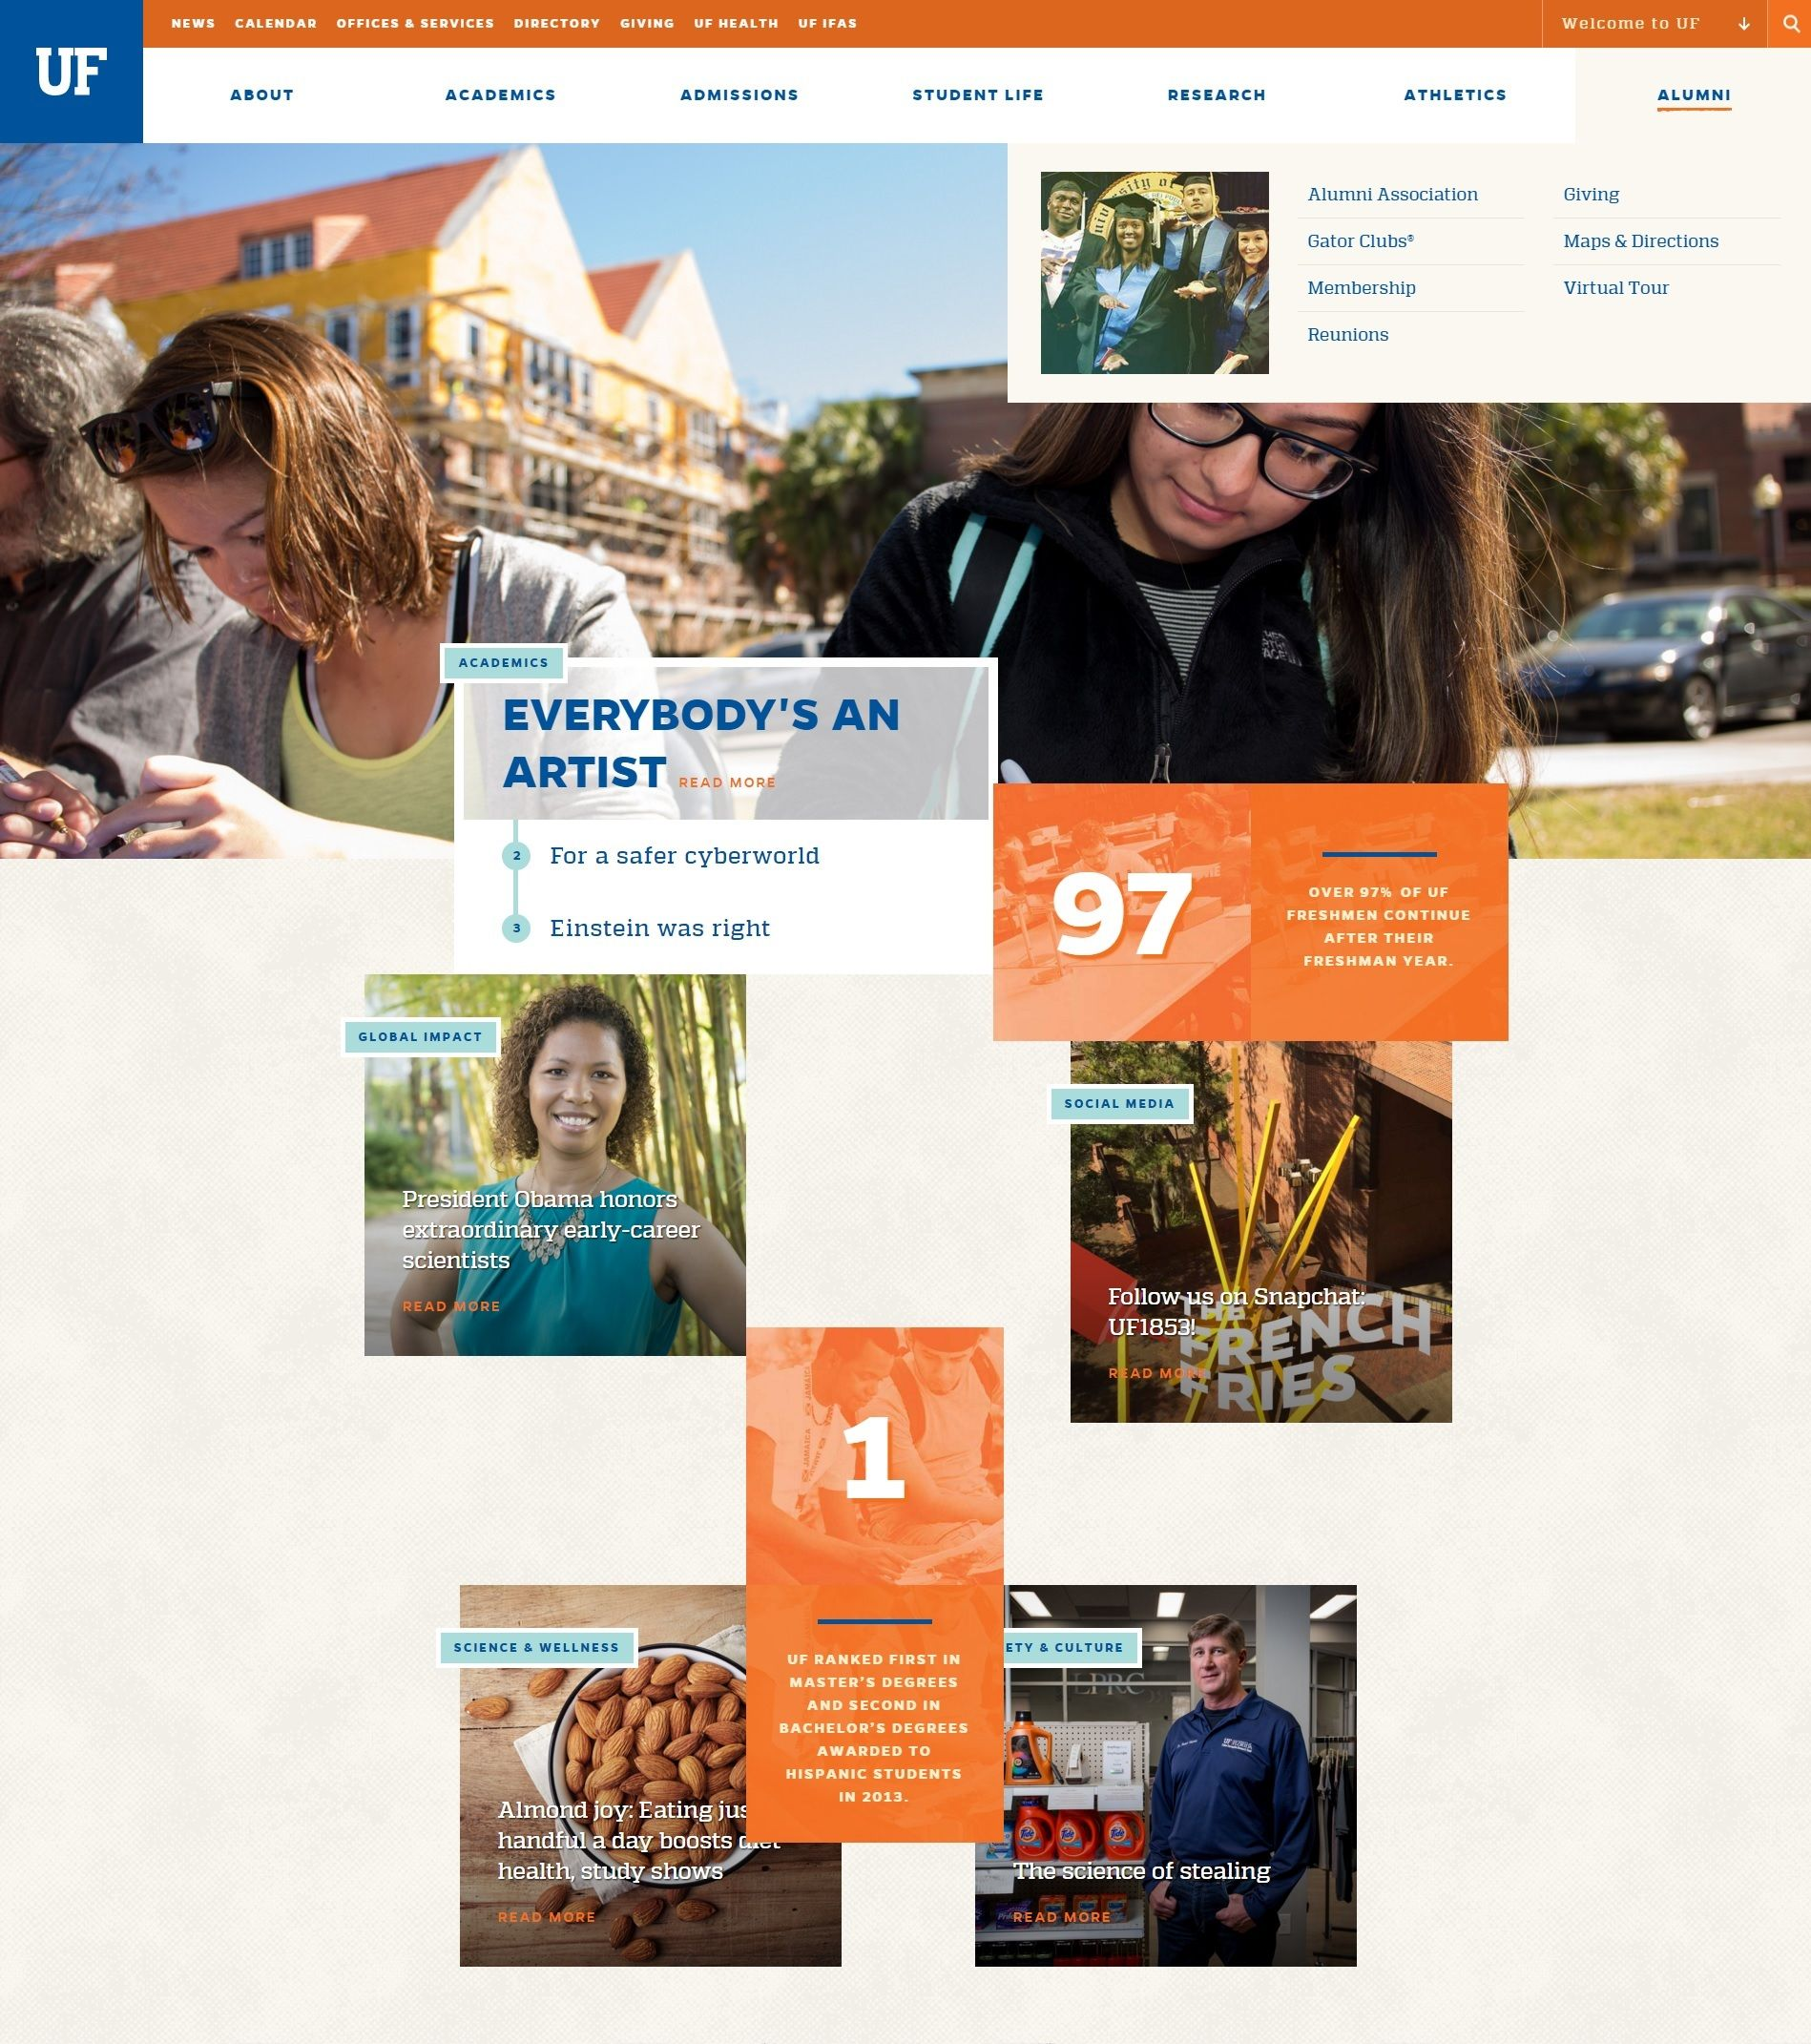 Uf Has One Of The Better University Site Designs I Ve Seen Webdesign Graphicdesign University Of Florida Best University University